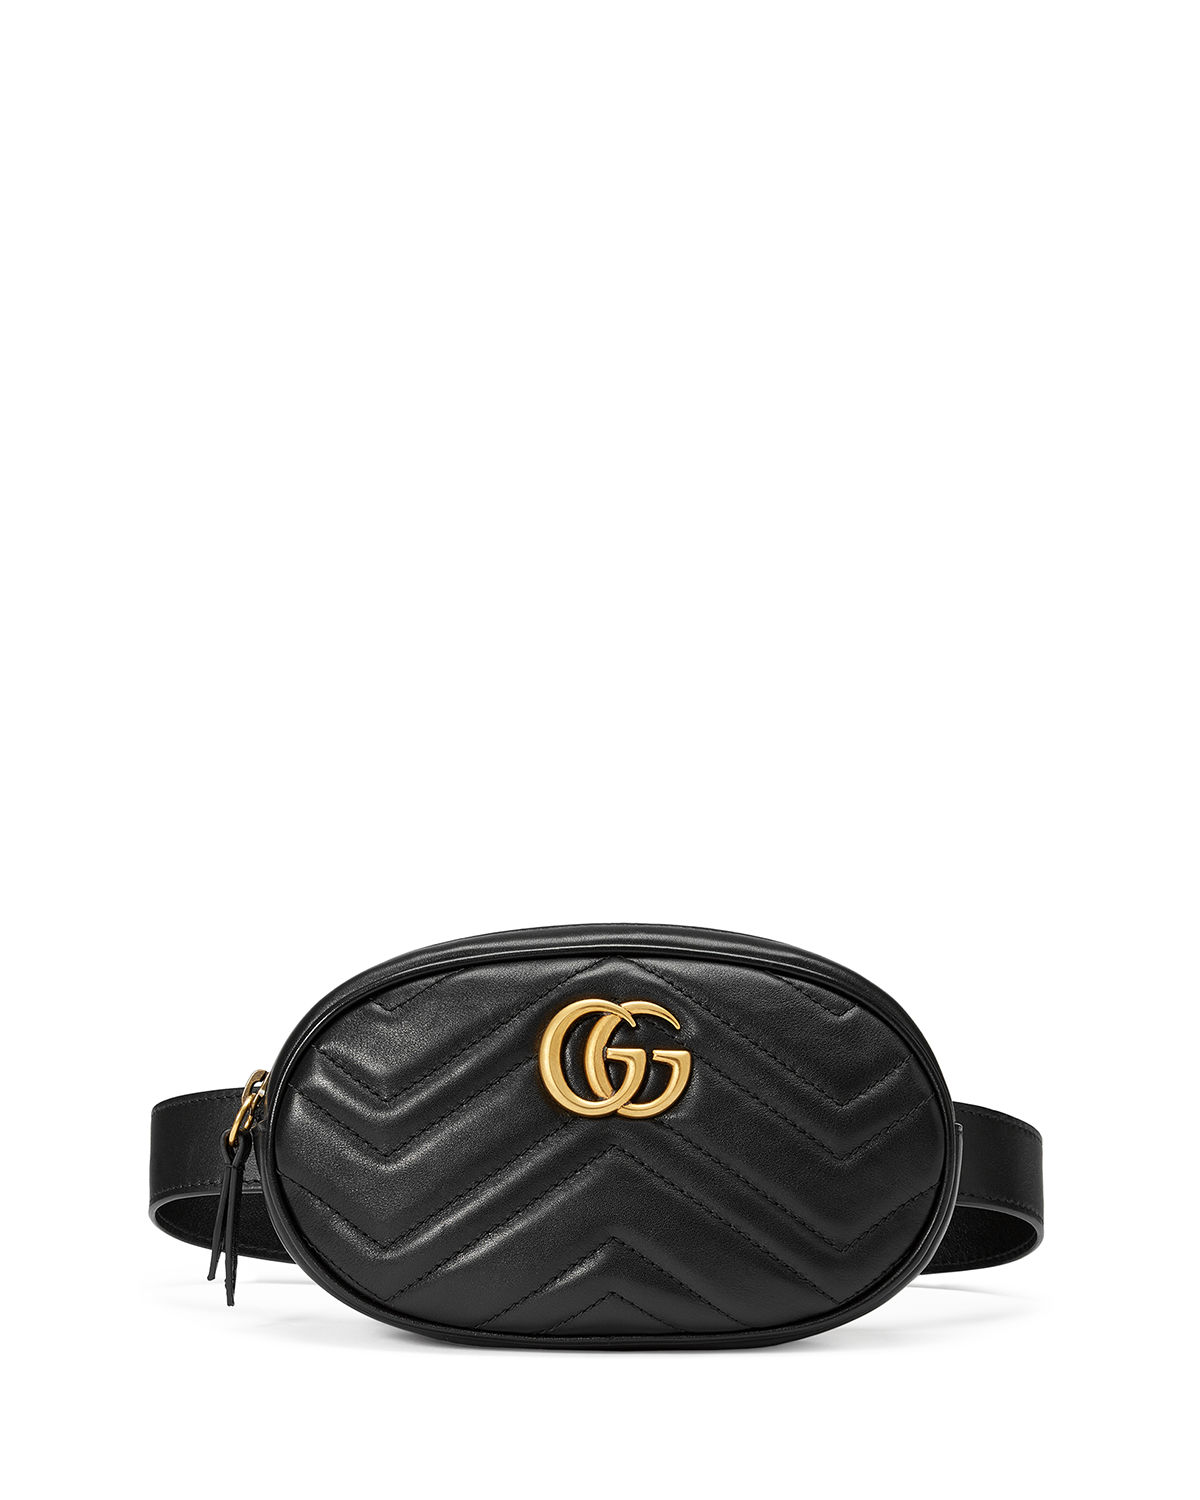 e3ba8978c01 GG Marmont Small Matelasse Leather Belt Bag